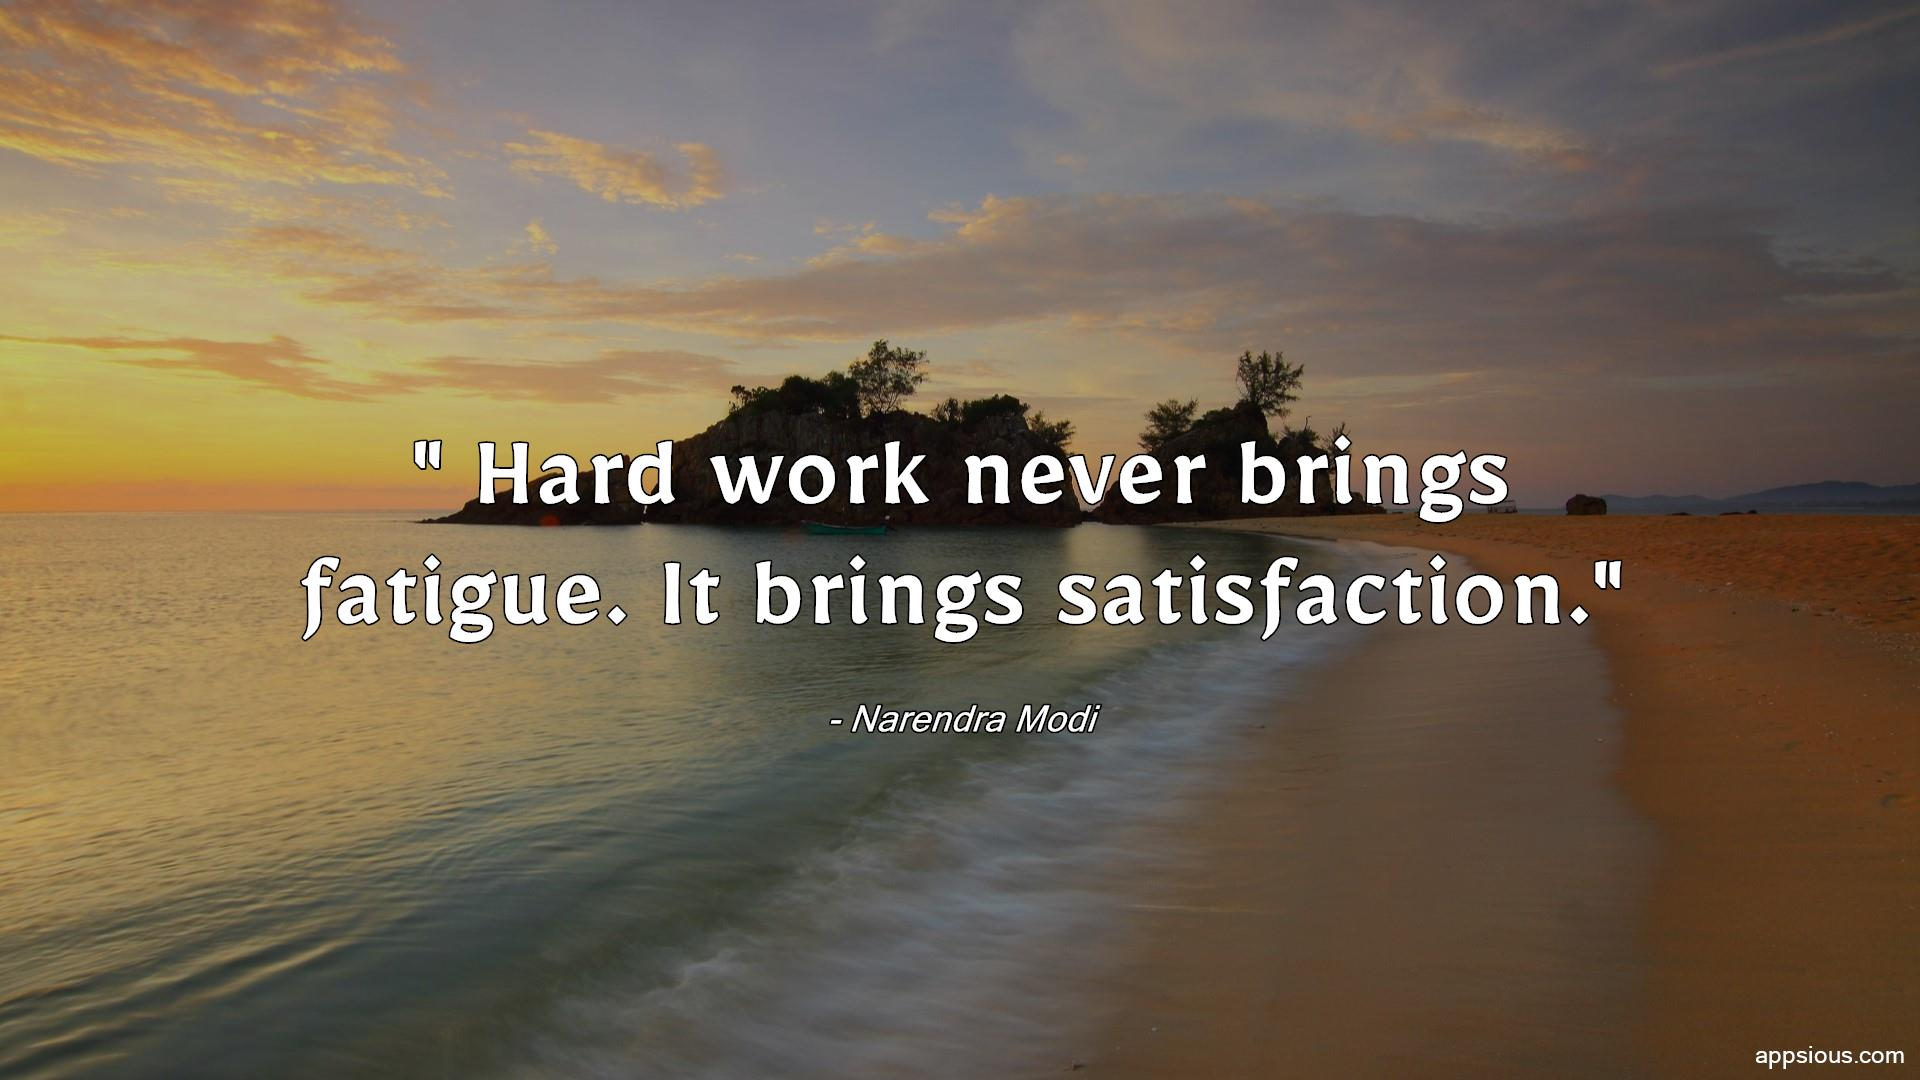 Hard work never brings fatigue. It brings satisfaction.